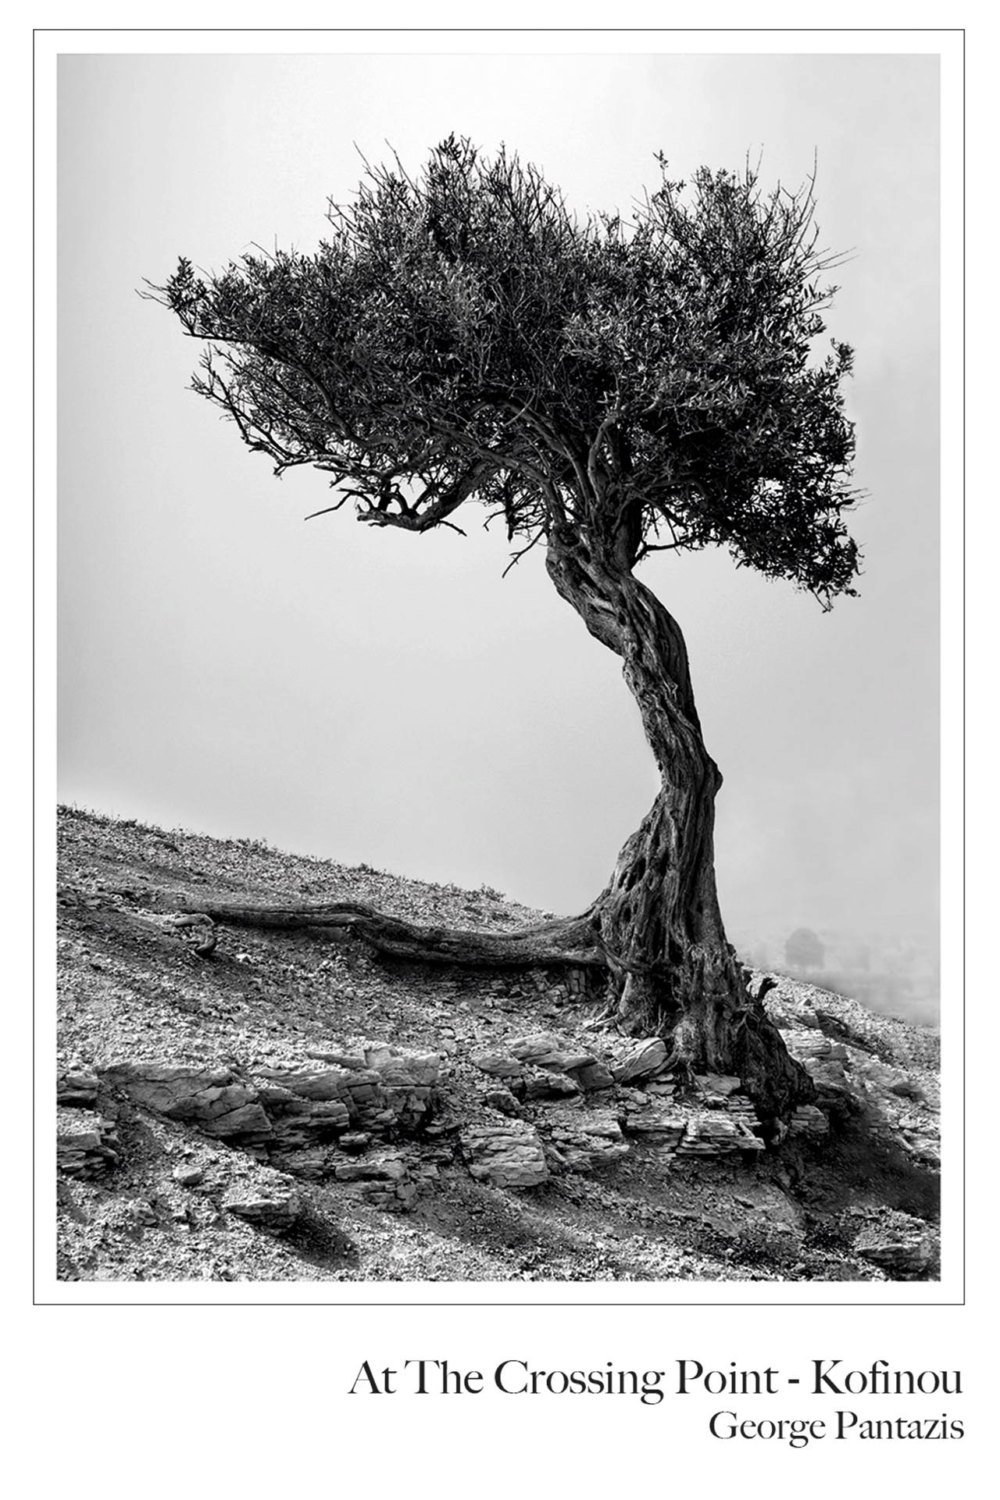 At The Crossing Point - Skarinou by George Pantazis (olive tree, nature, landscape, fine art photography, black and white, monochrome, Cyprus, Mediterranean)